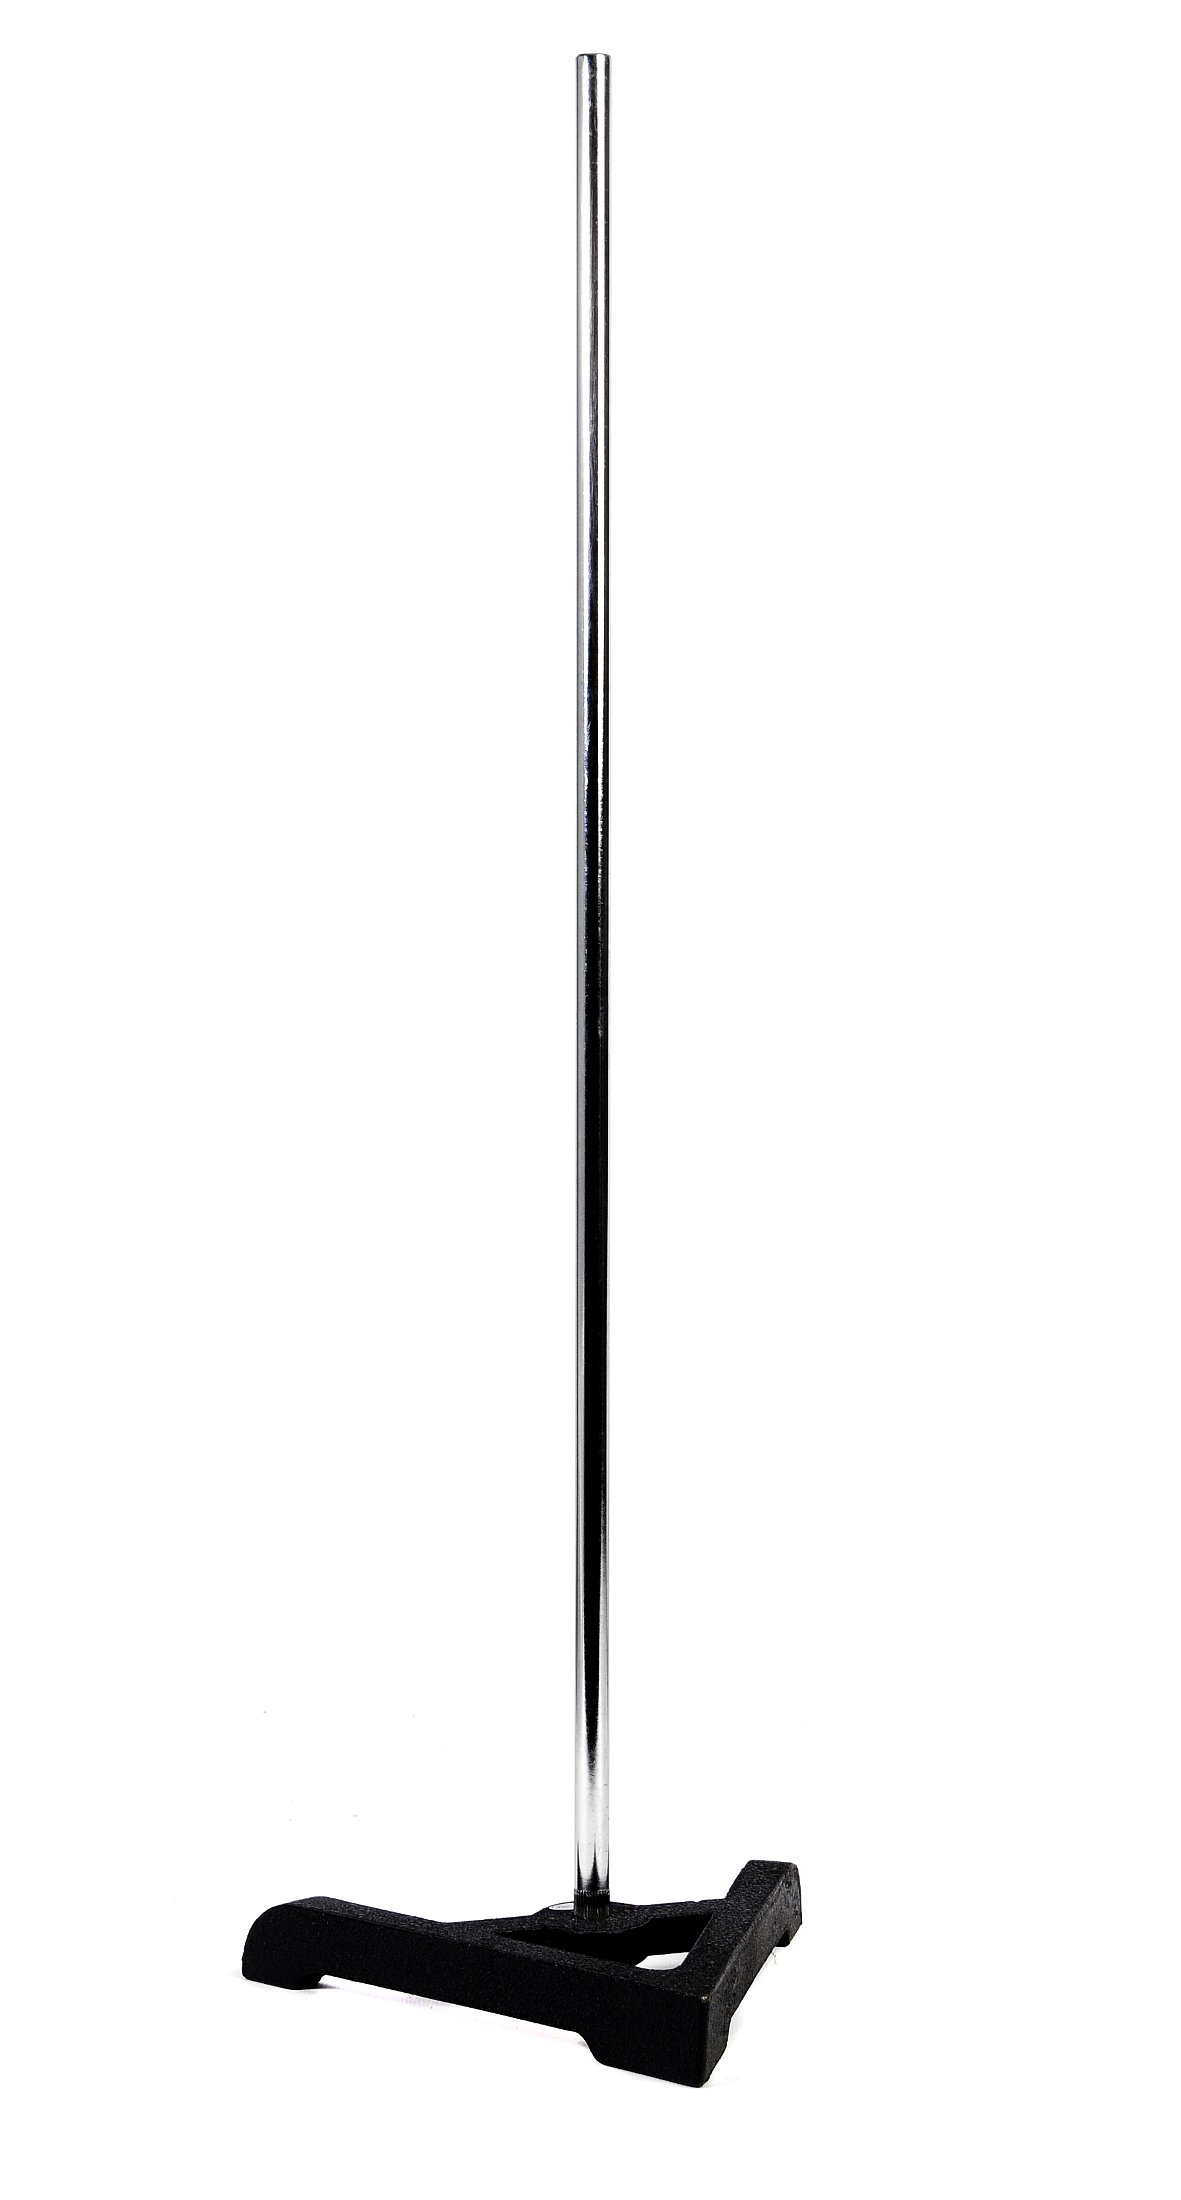 American Educational Cast Iron Support Ring Stand with Triangular Base, 7-3/4'' Legs, 7/16'' Diameter x 23'' Length Rod Size